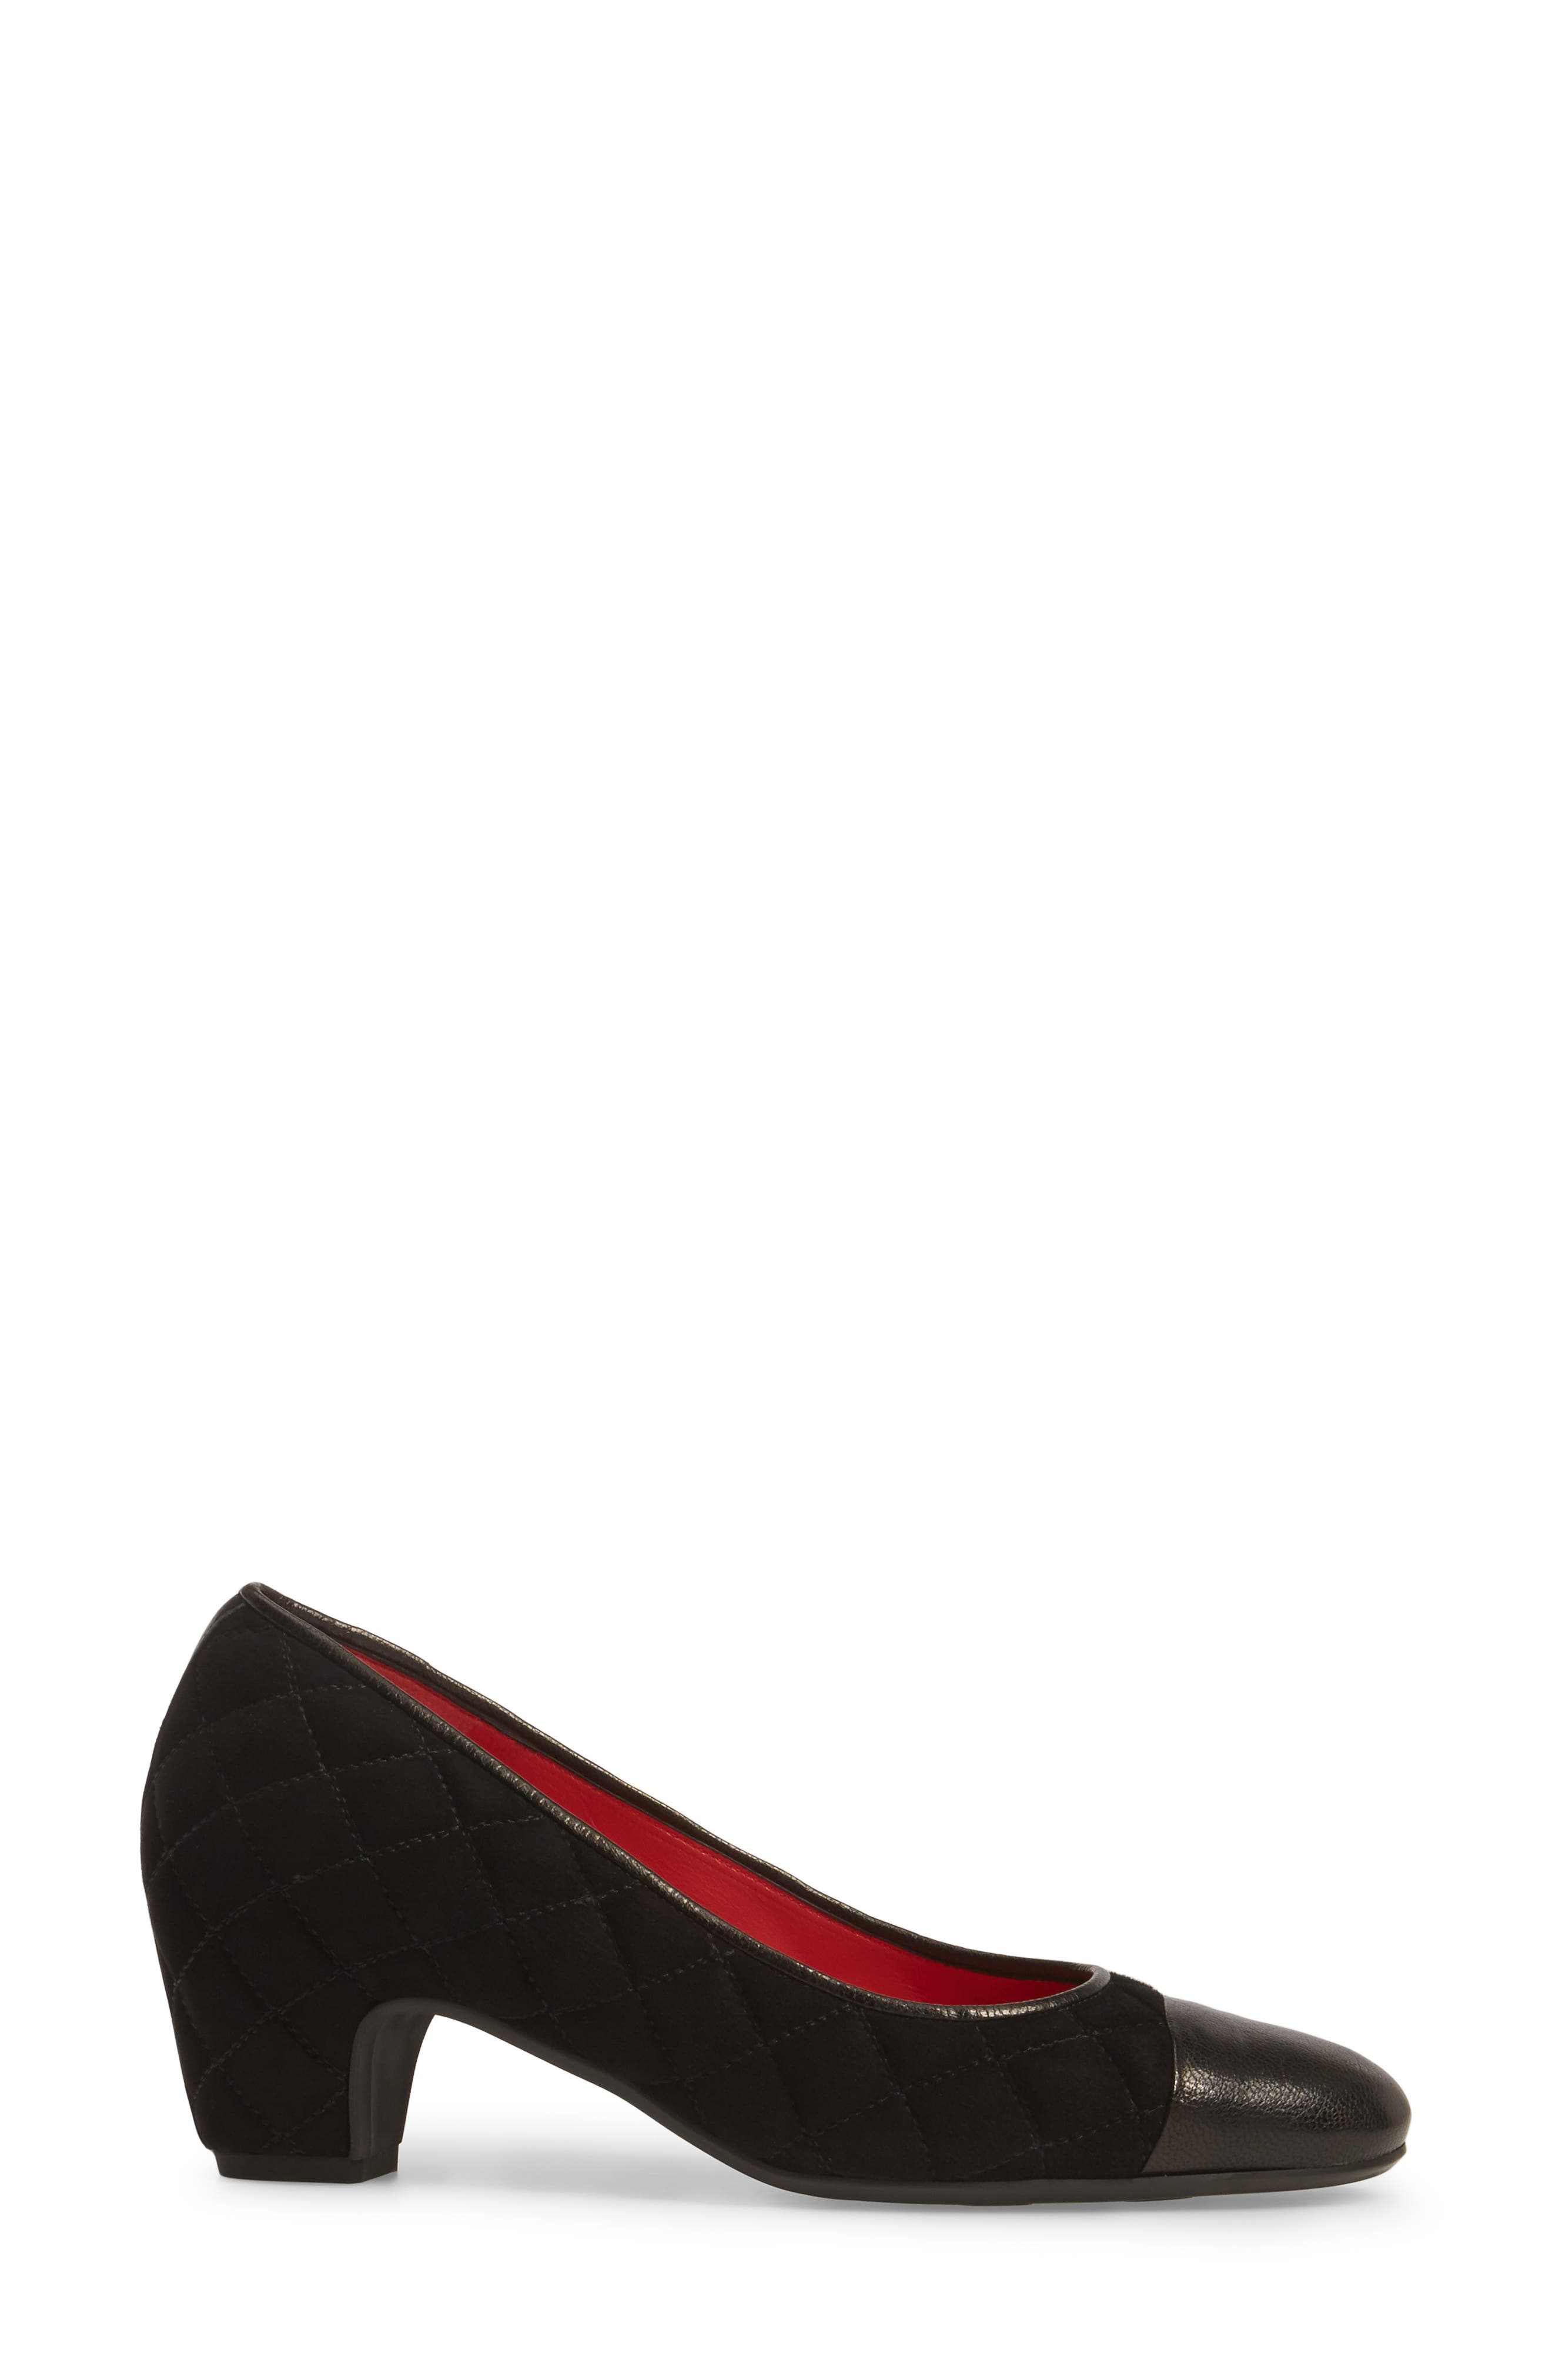 Quilted Cap Toe Pump,                             Alternate thumbnail 3, color,                             Black Suede/ Black Leather